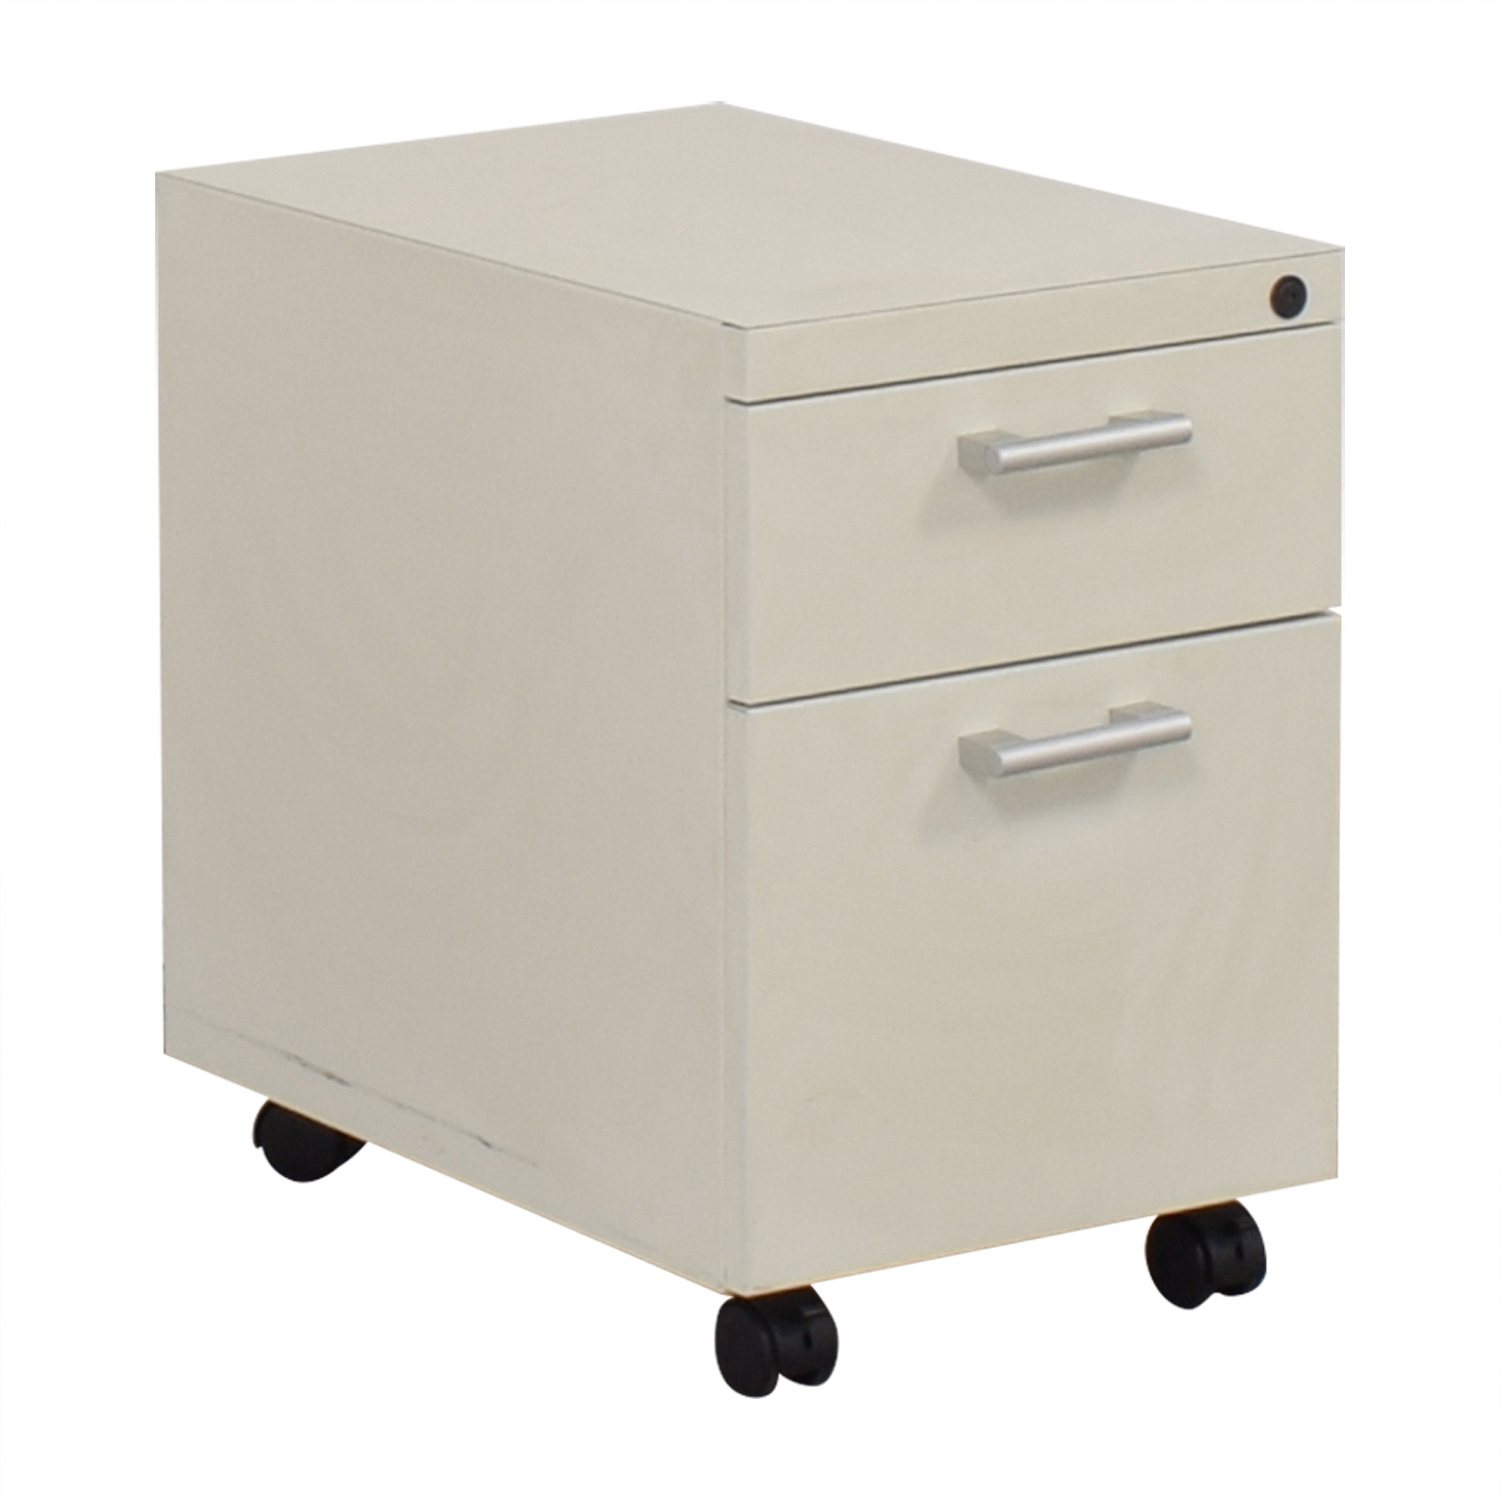 White Two-Drawer Filing Cabinet dimensions